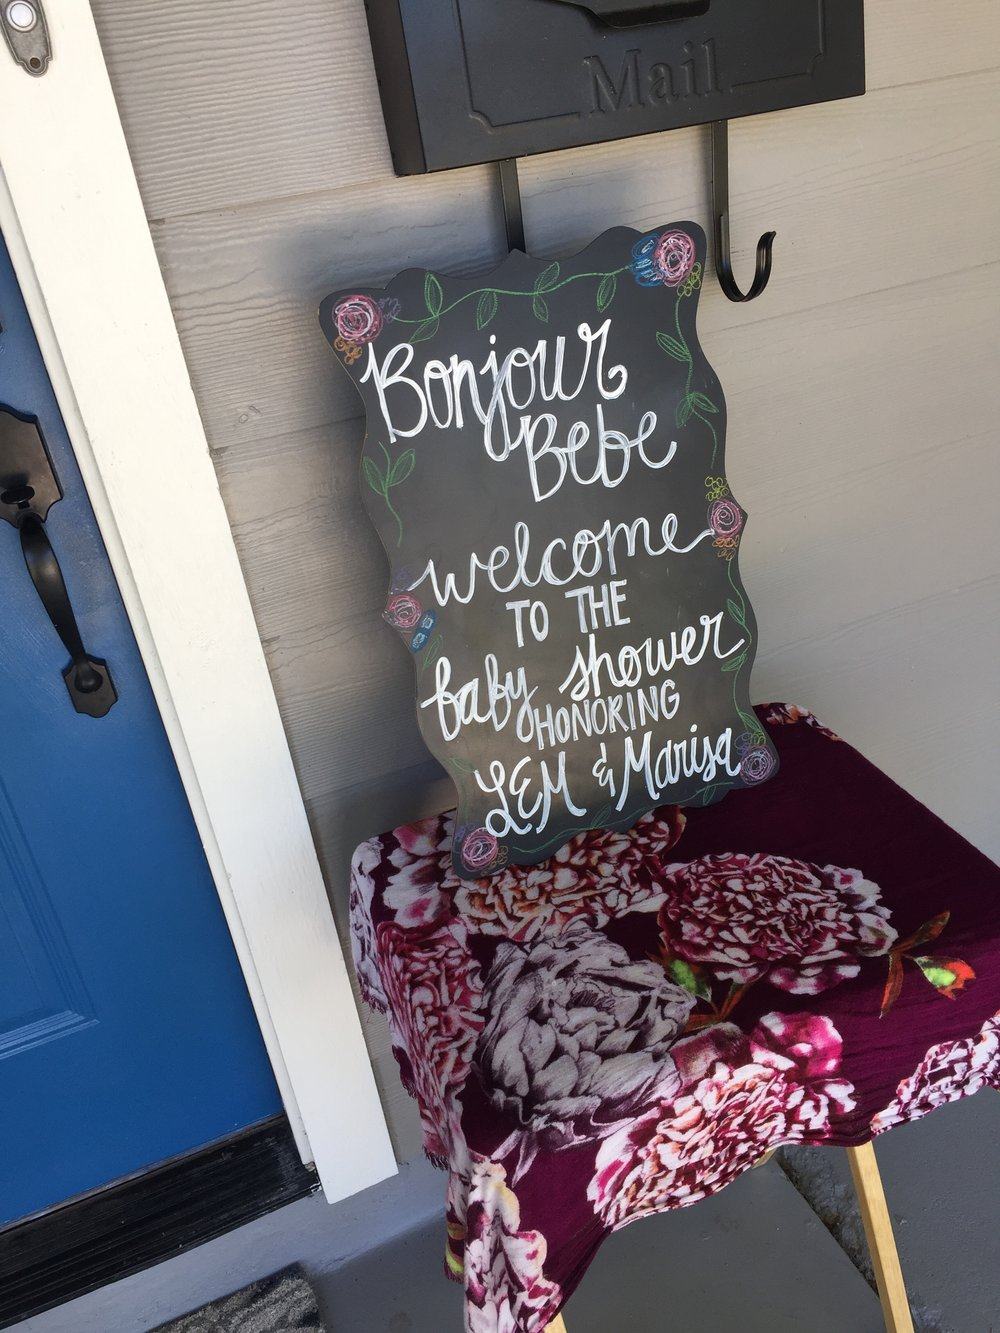 My sister-in-law, Meredith, has such talent for beautiful chalkboard signs!